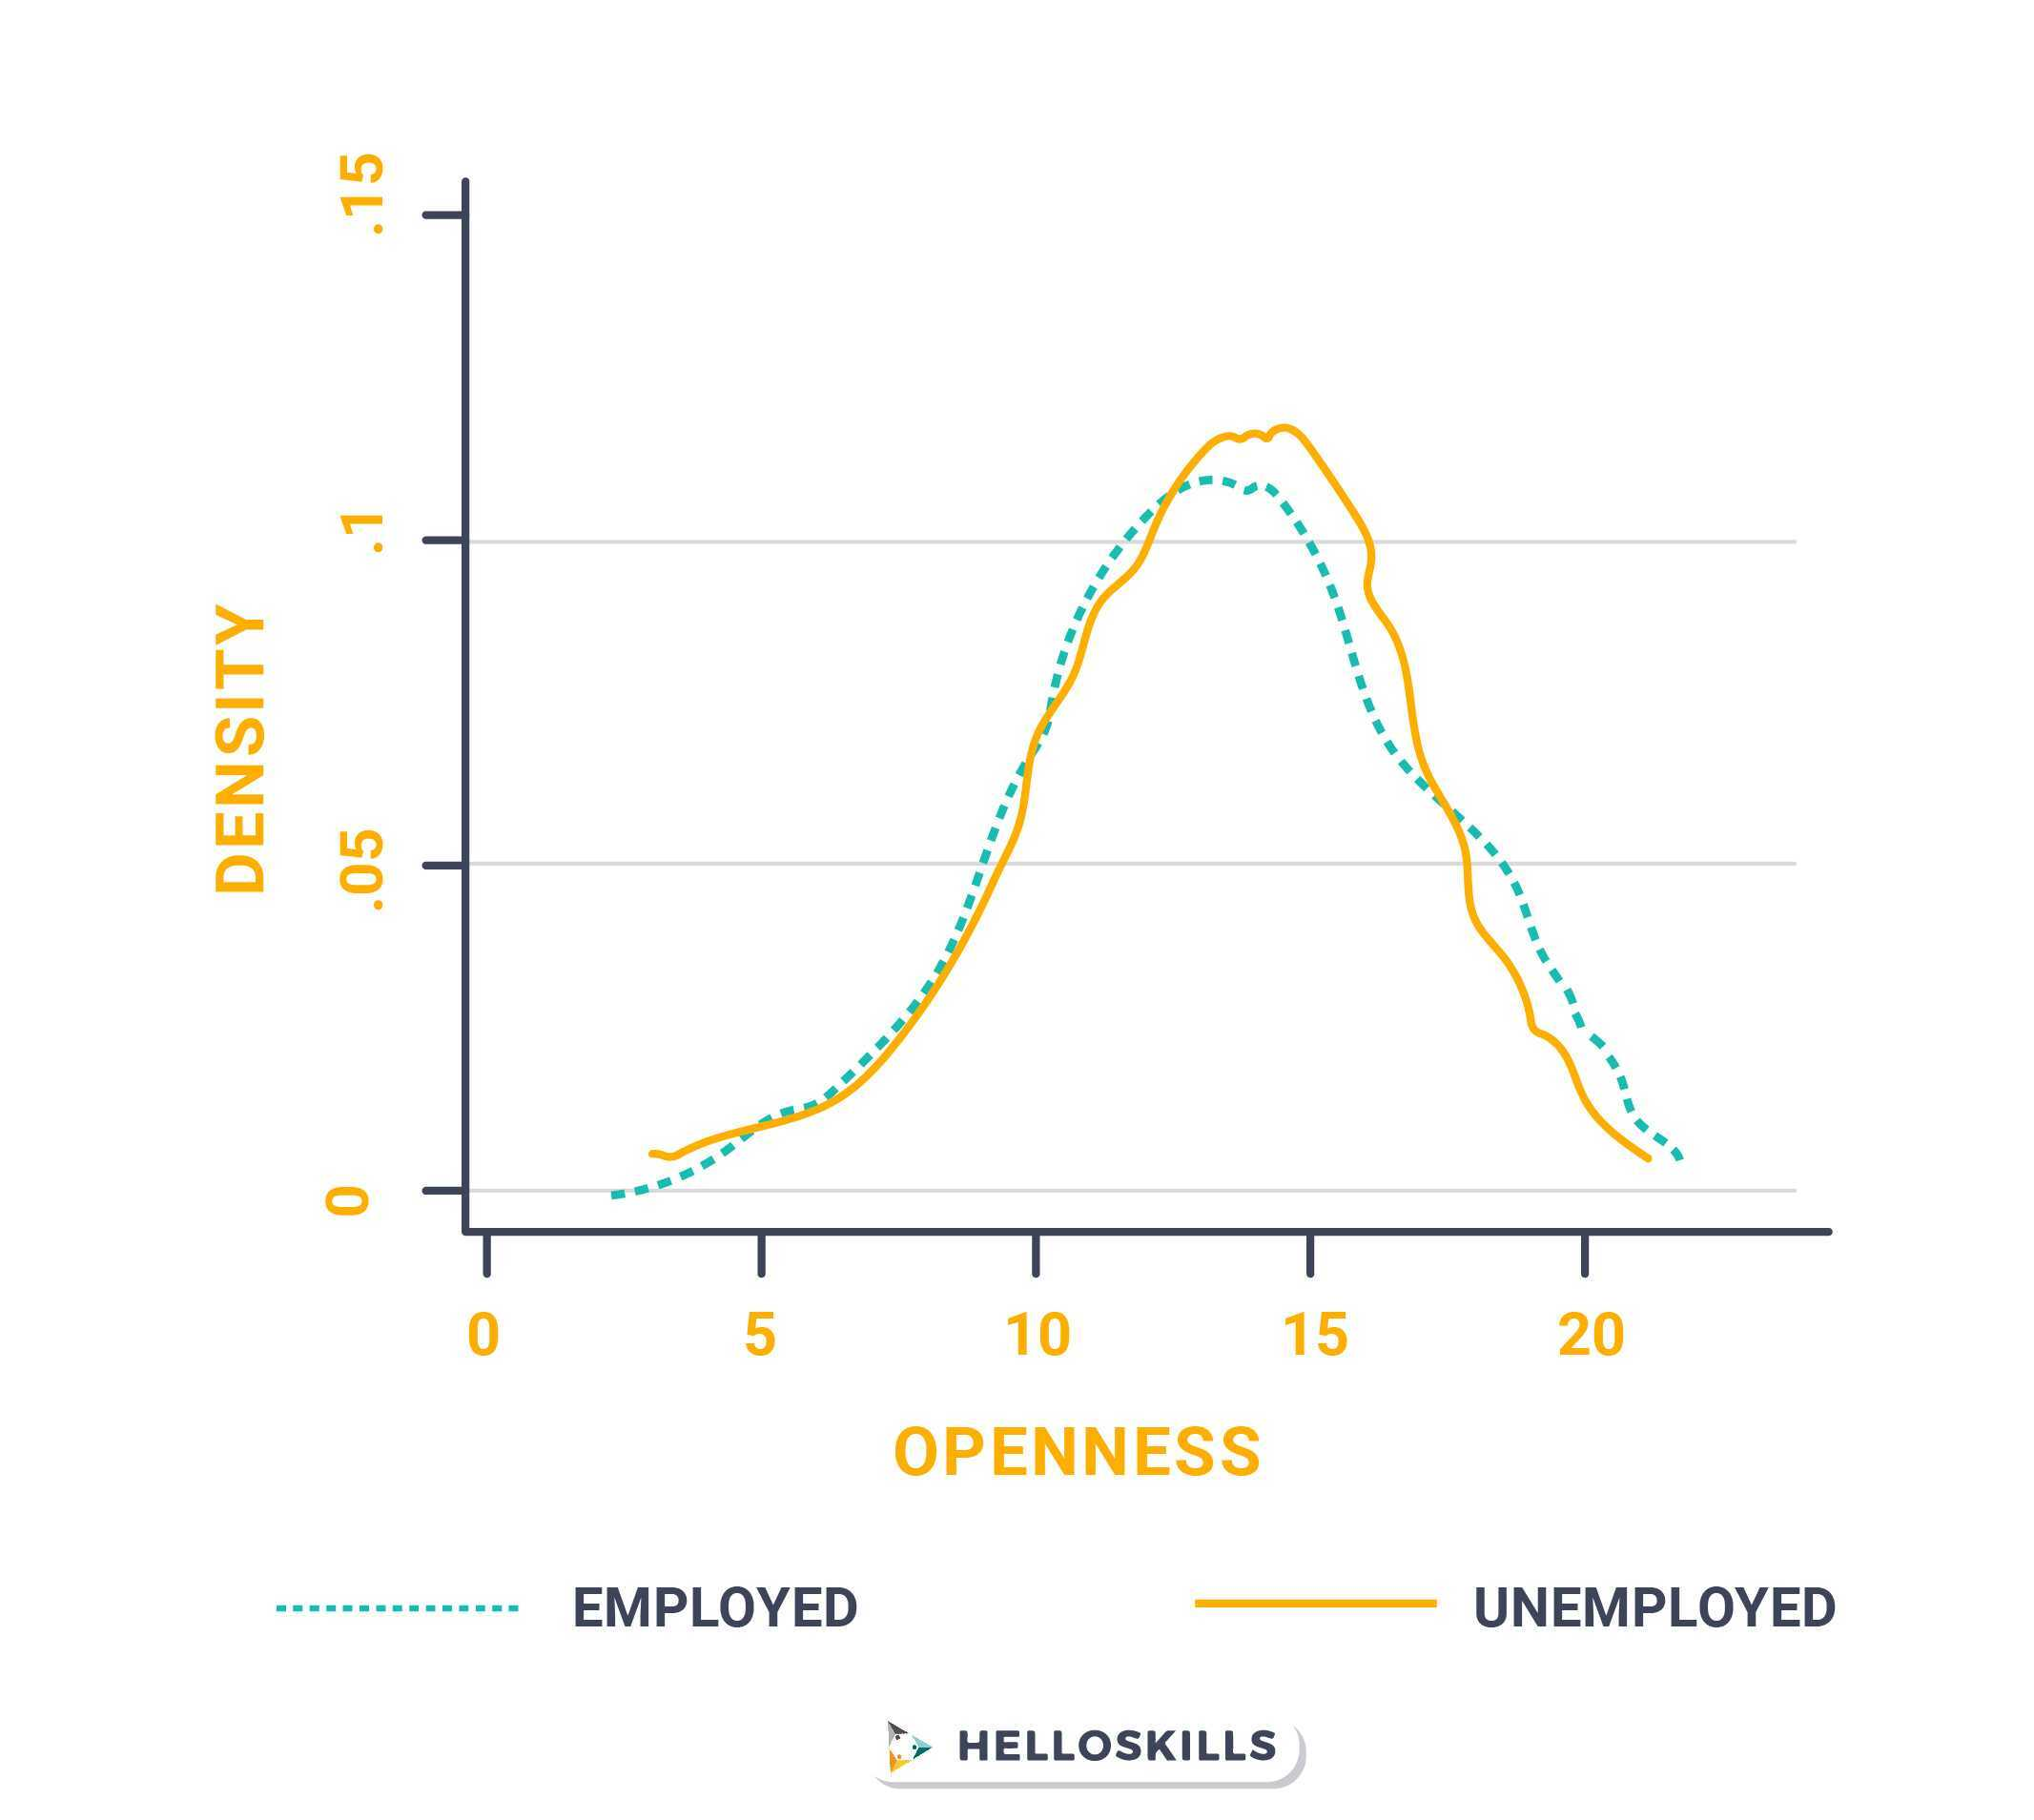 openness vs employment density graph